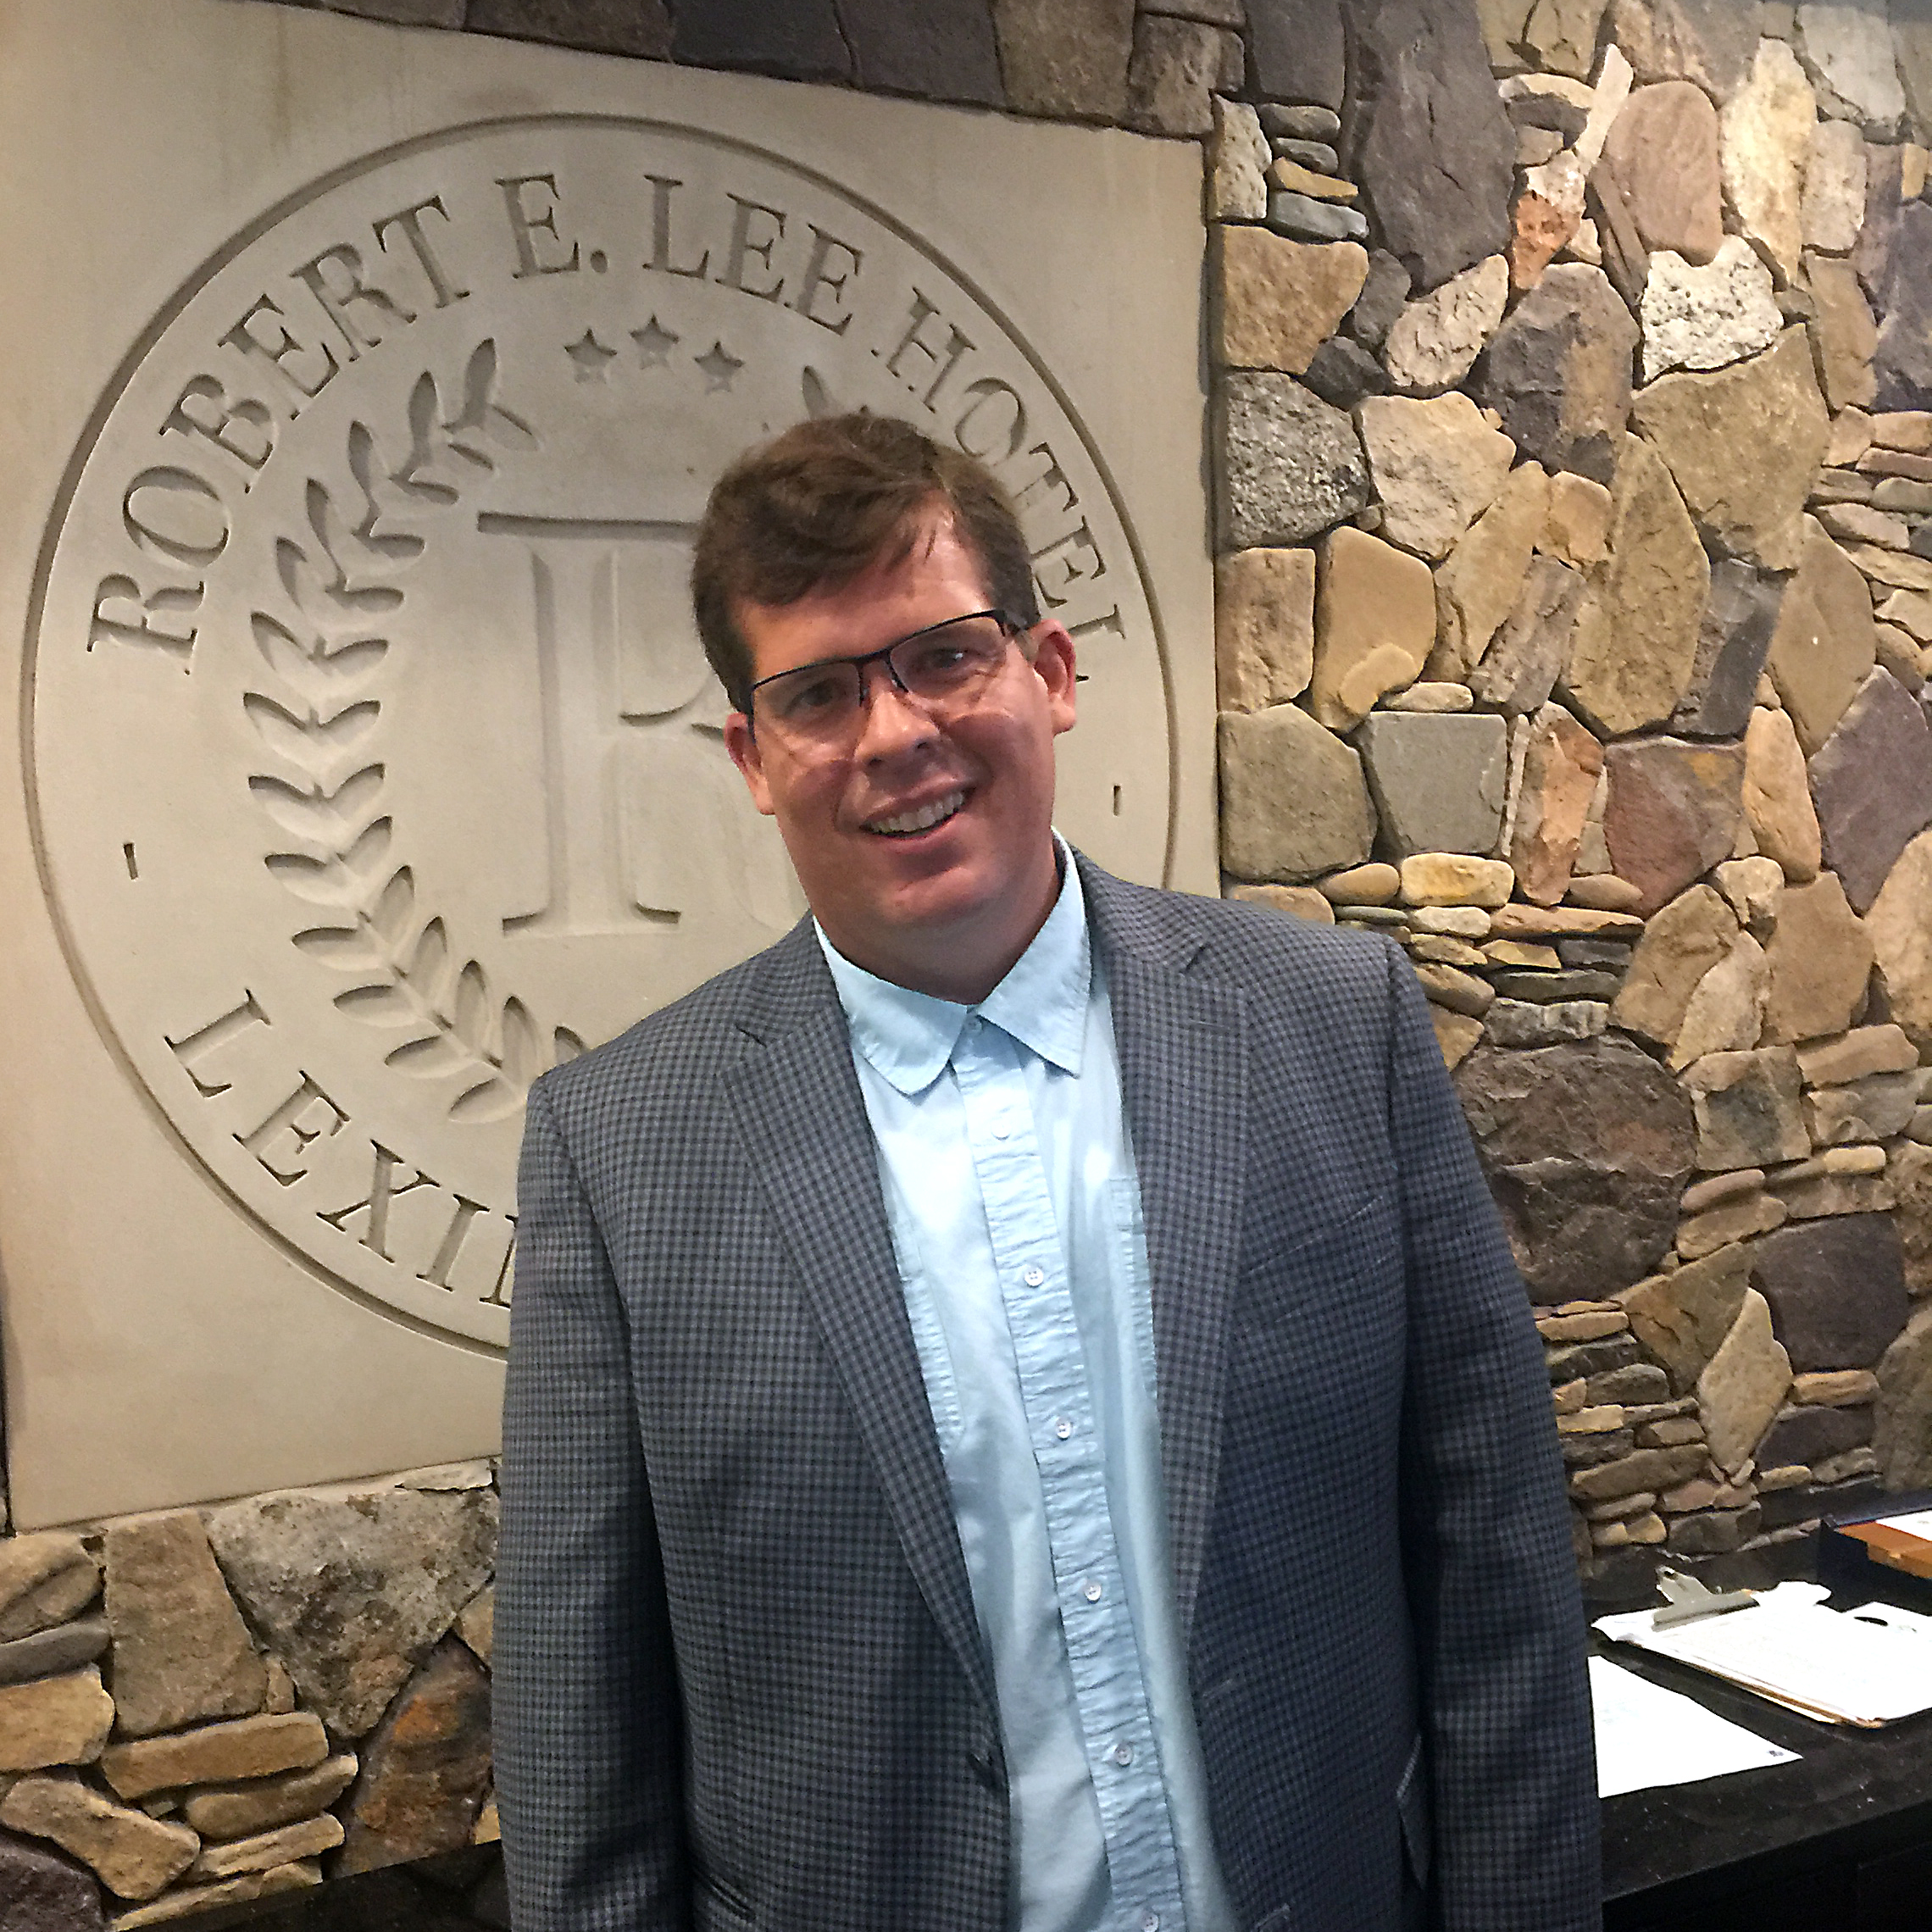 Taylor Hospitality Announces New General Manager at Robert E. Lee Hotel | Up to Par Management